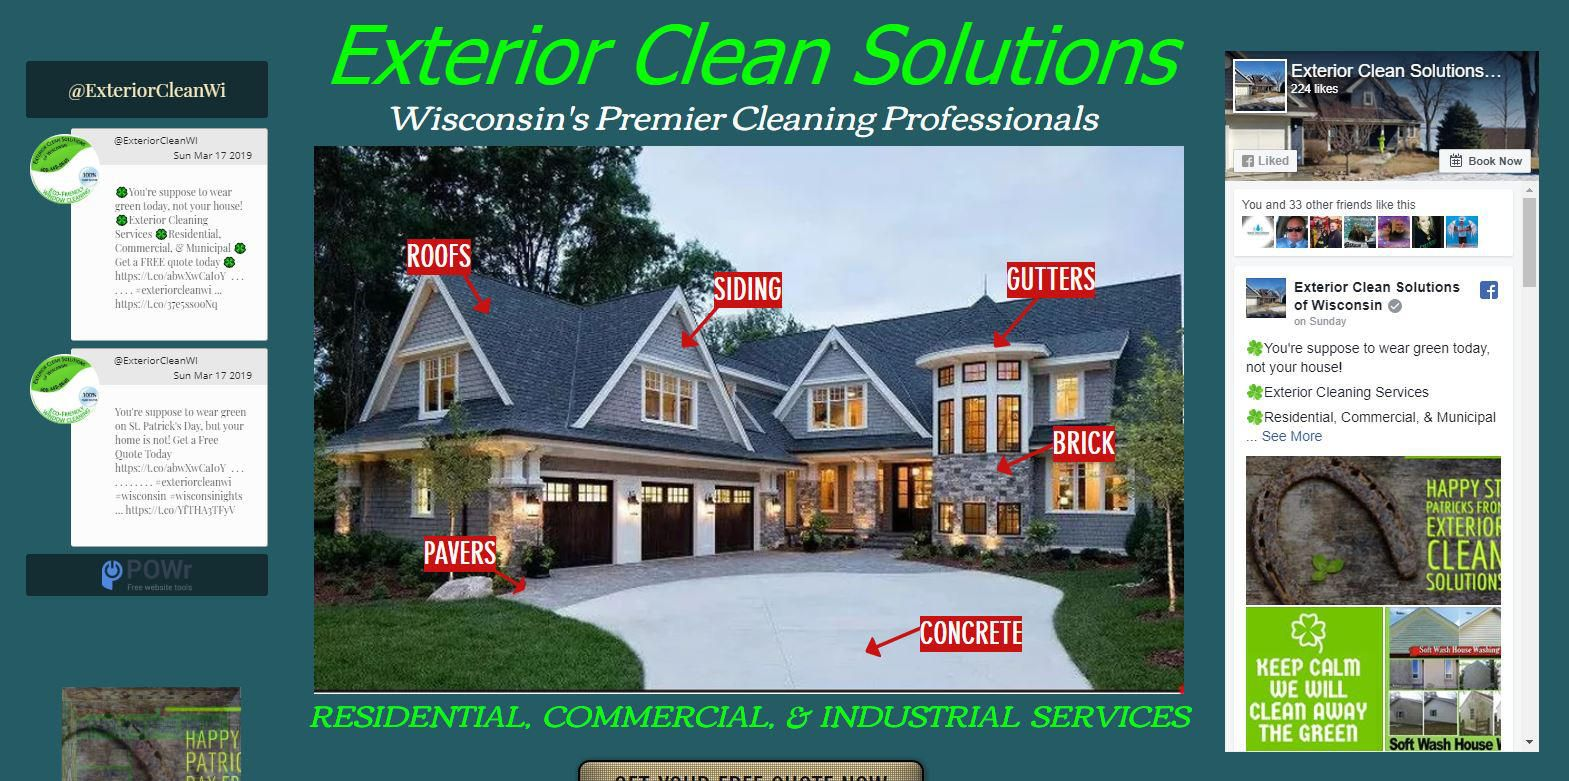 Exterior Clean Solutions Offers A Wide Range Of Exterior Cleaning